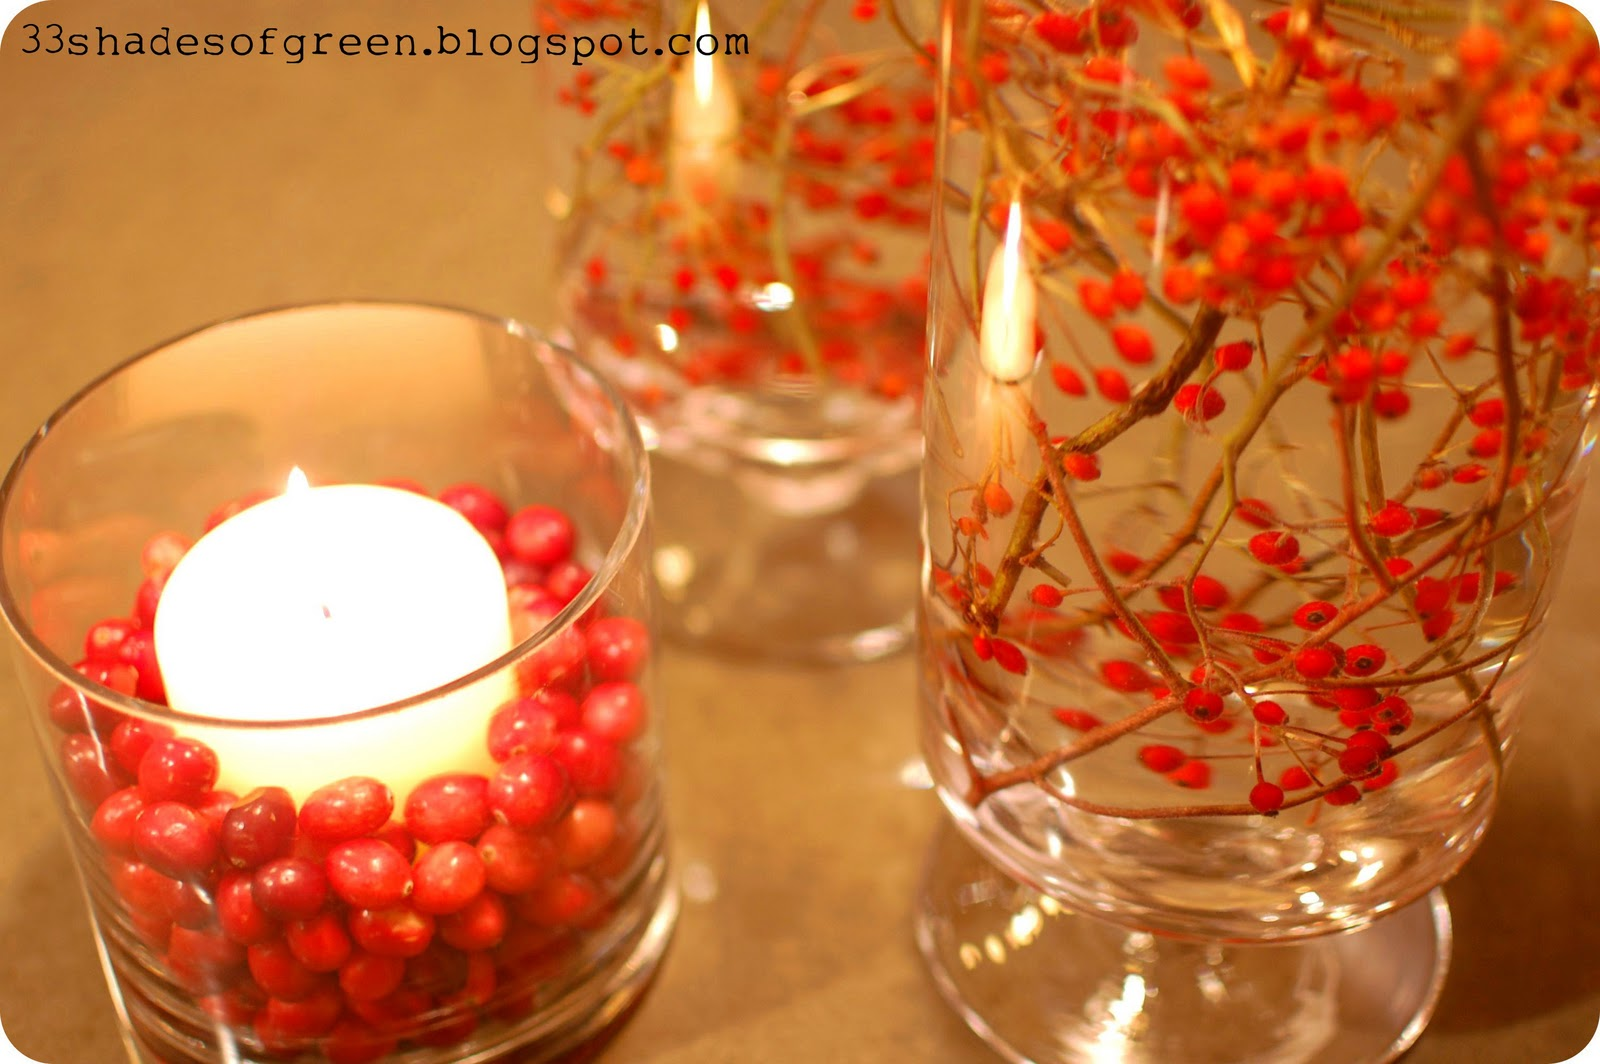 33 Shades Of Green Handmade Holidays Easy Centerpiece